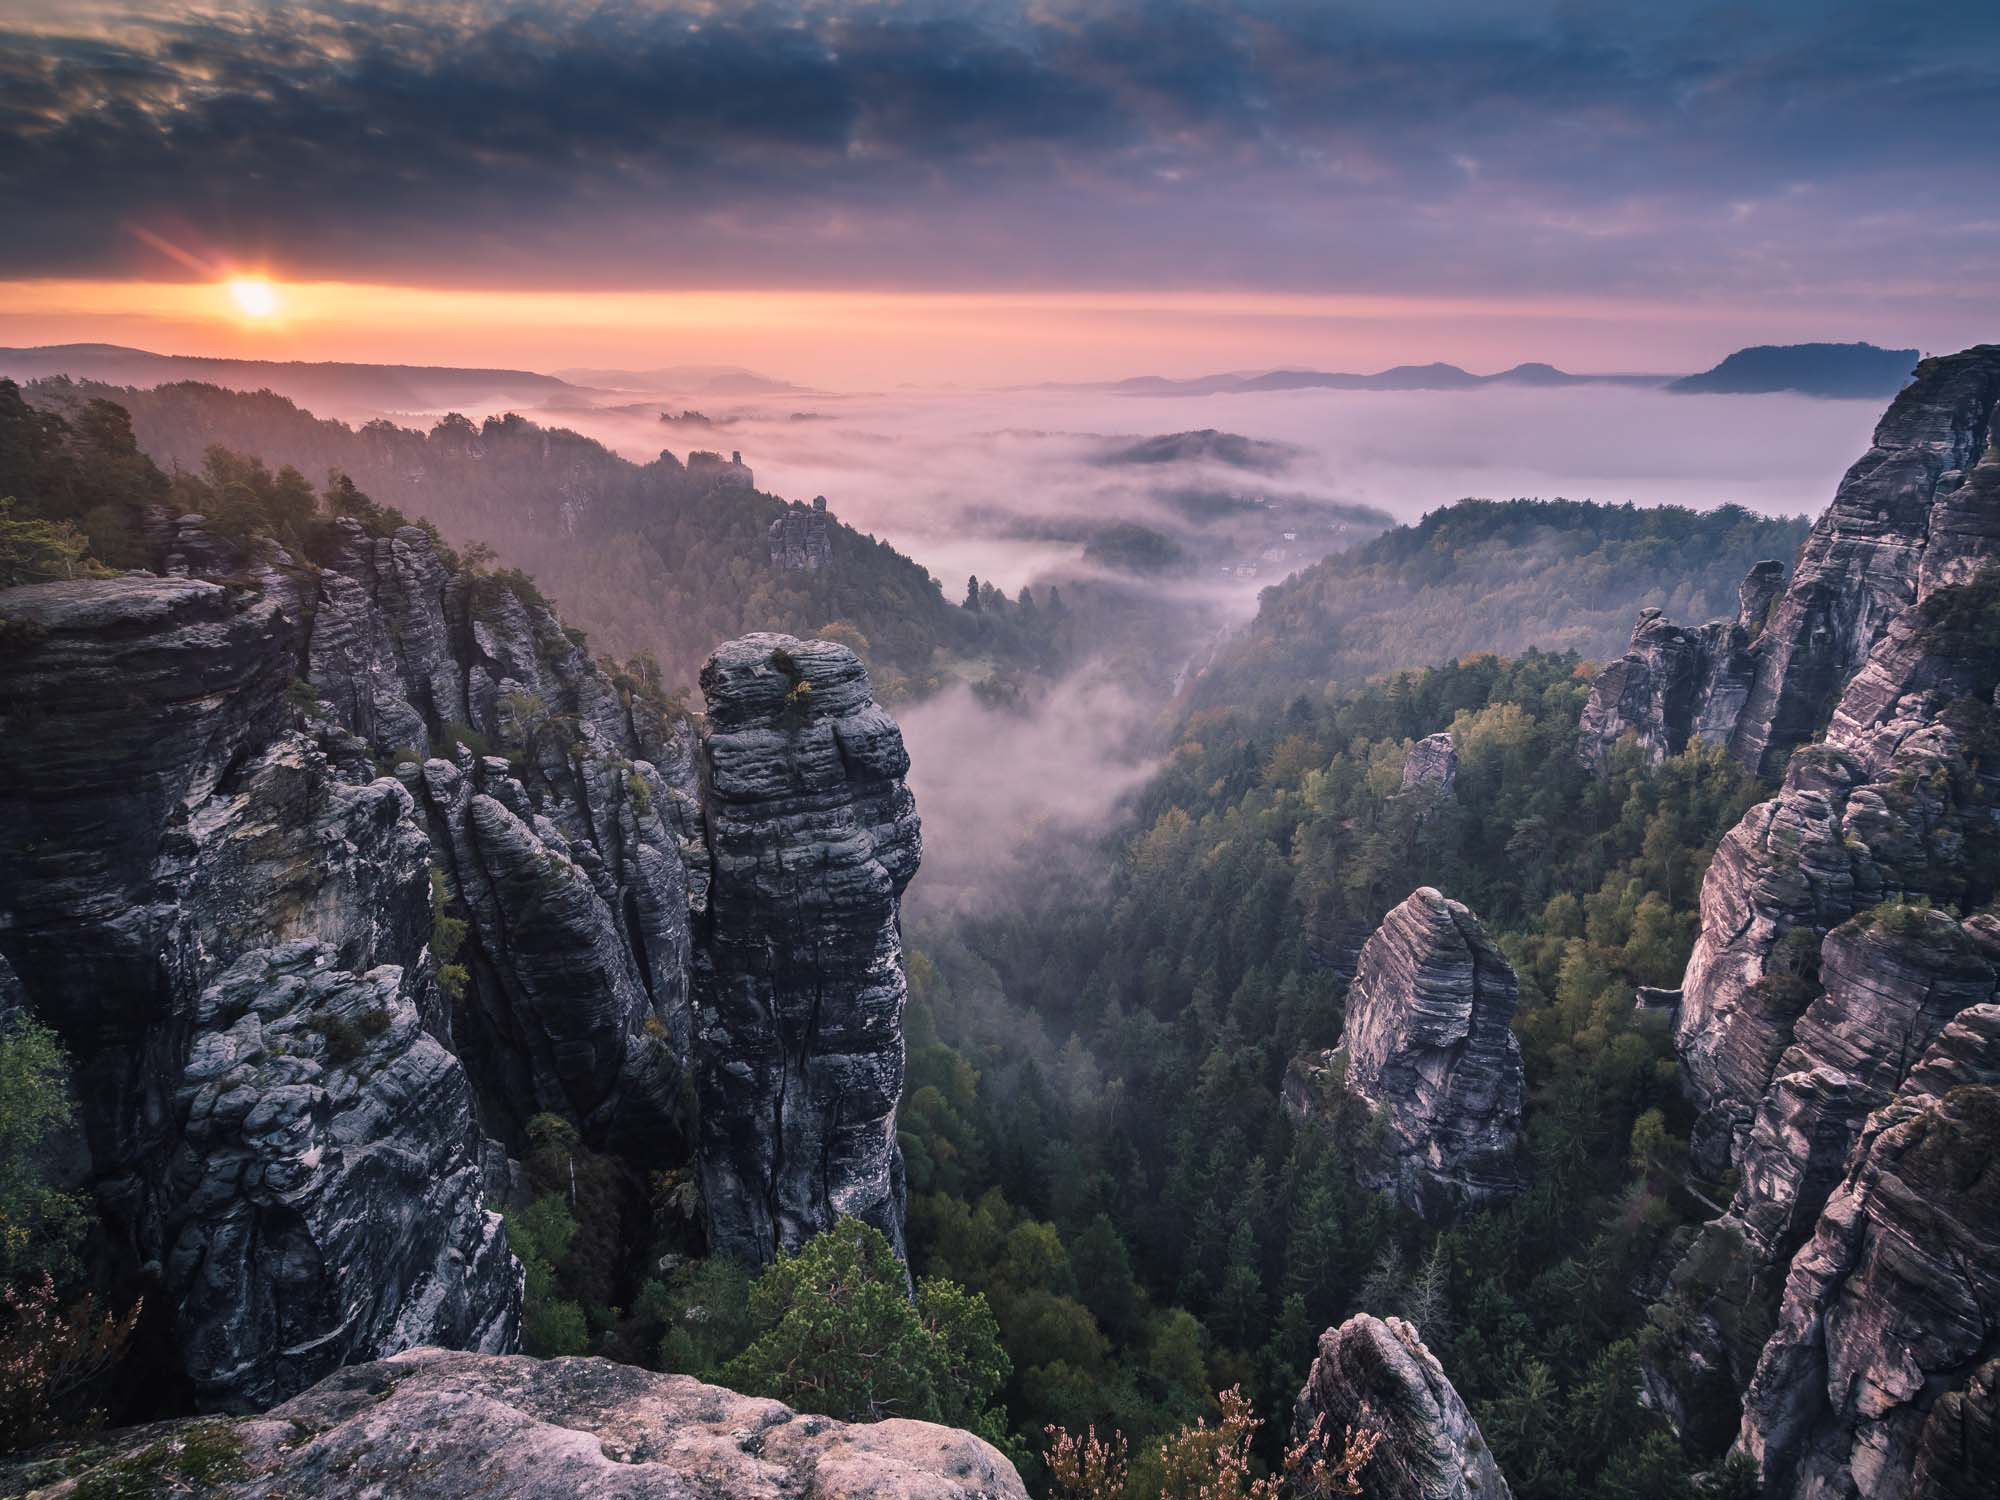 Sunrise on the Rocks by Andreas Wonisch